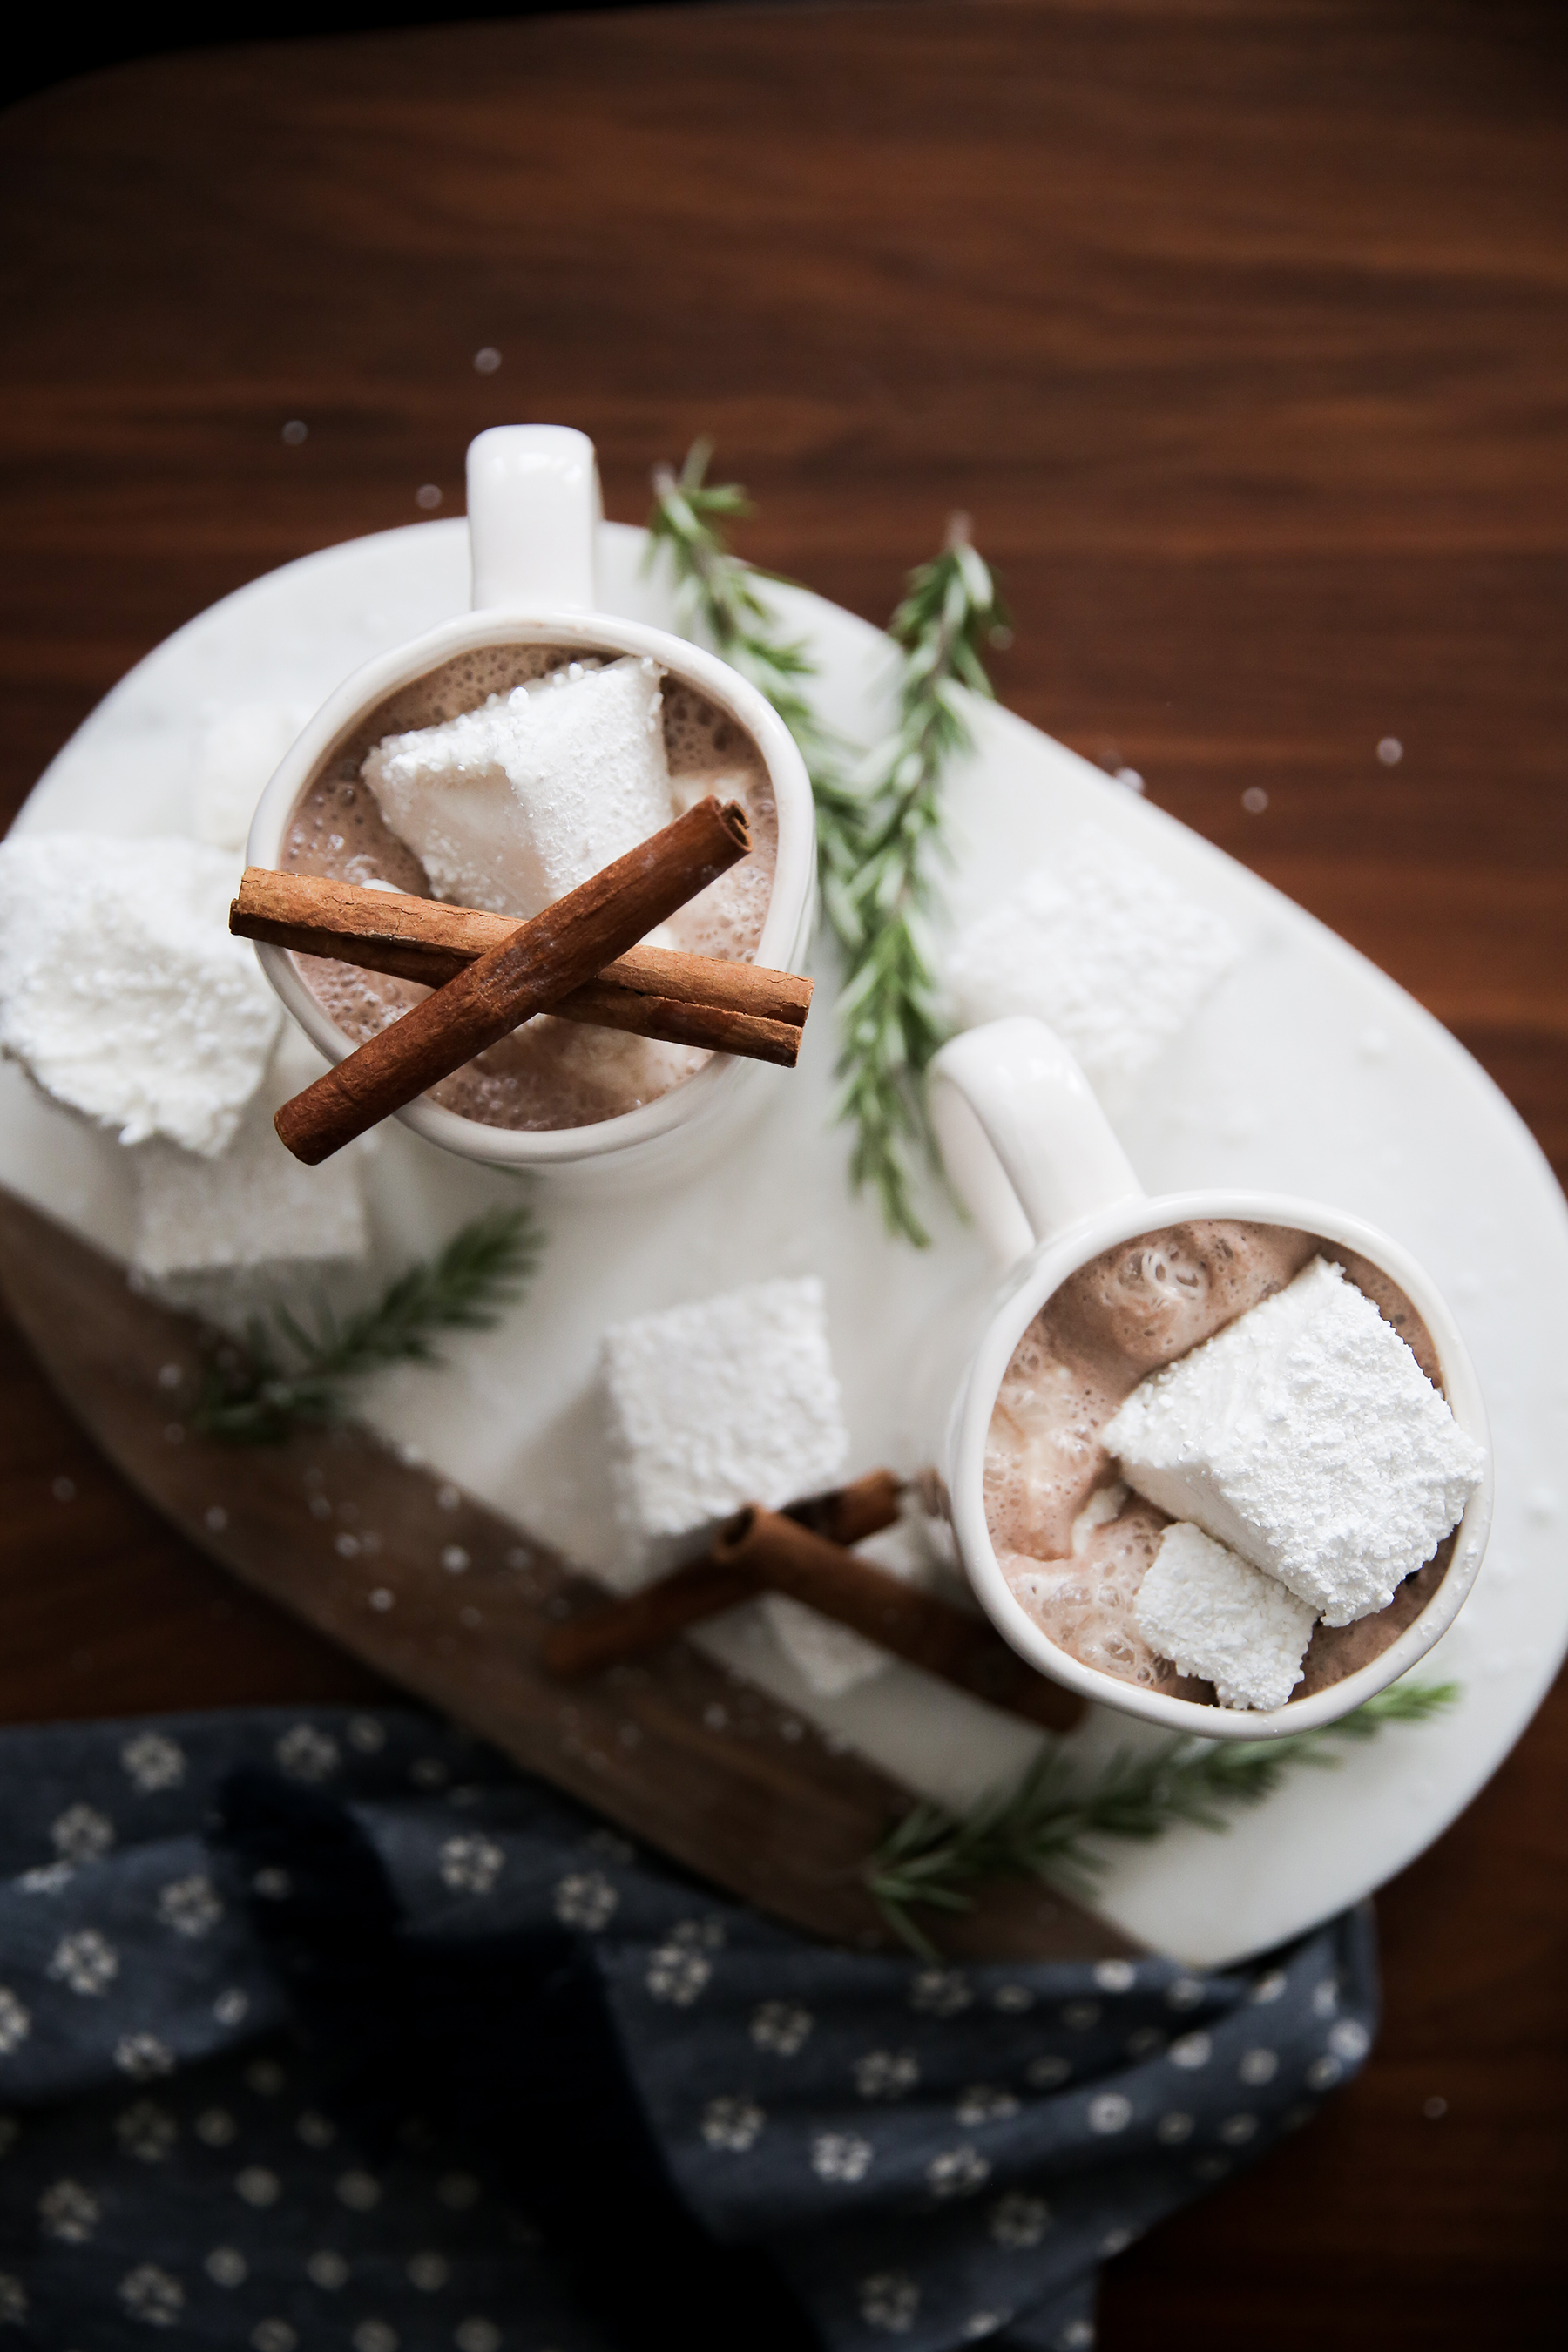 top 10 popular posts of 2015 from Advicefroma20Something.com, cozy holiday shoot, beautiful hot chocolate, marble tray, homemade marshmallows, hot chocolate and marshmallows, white mugs, hot cocoa